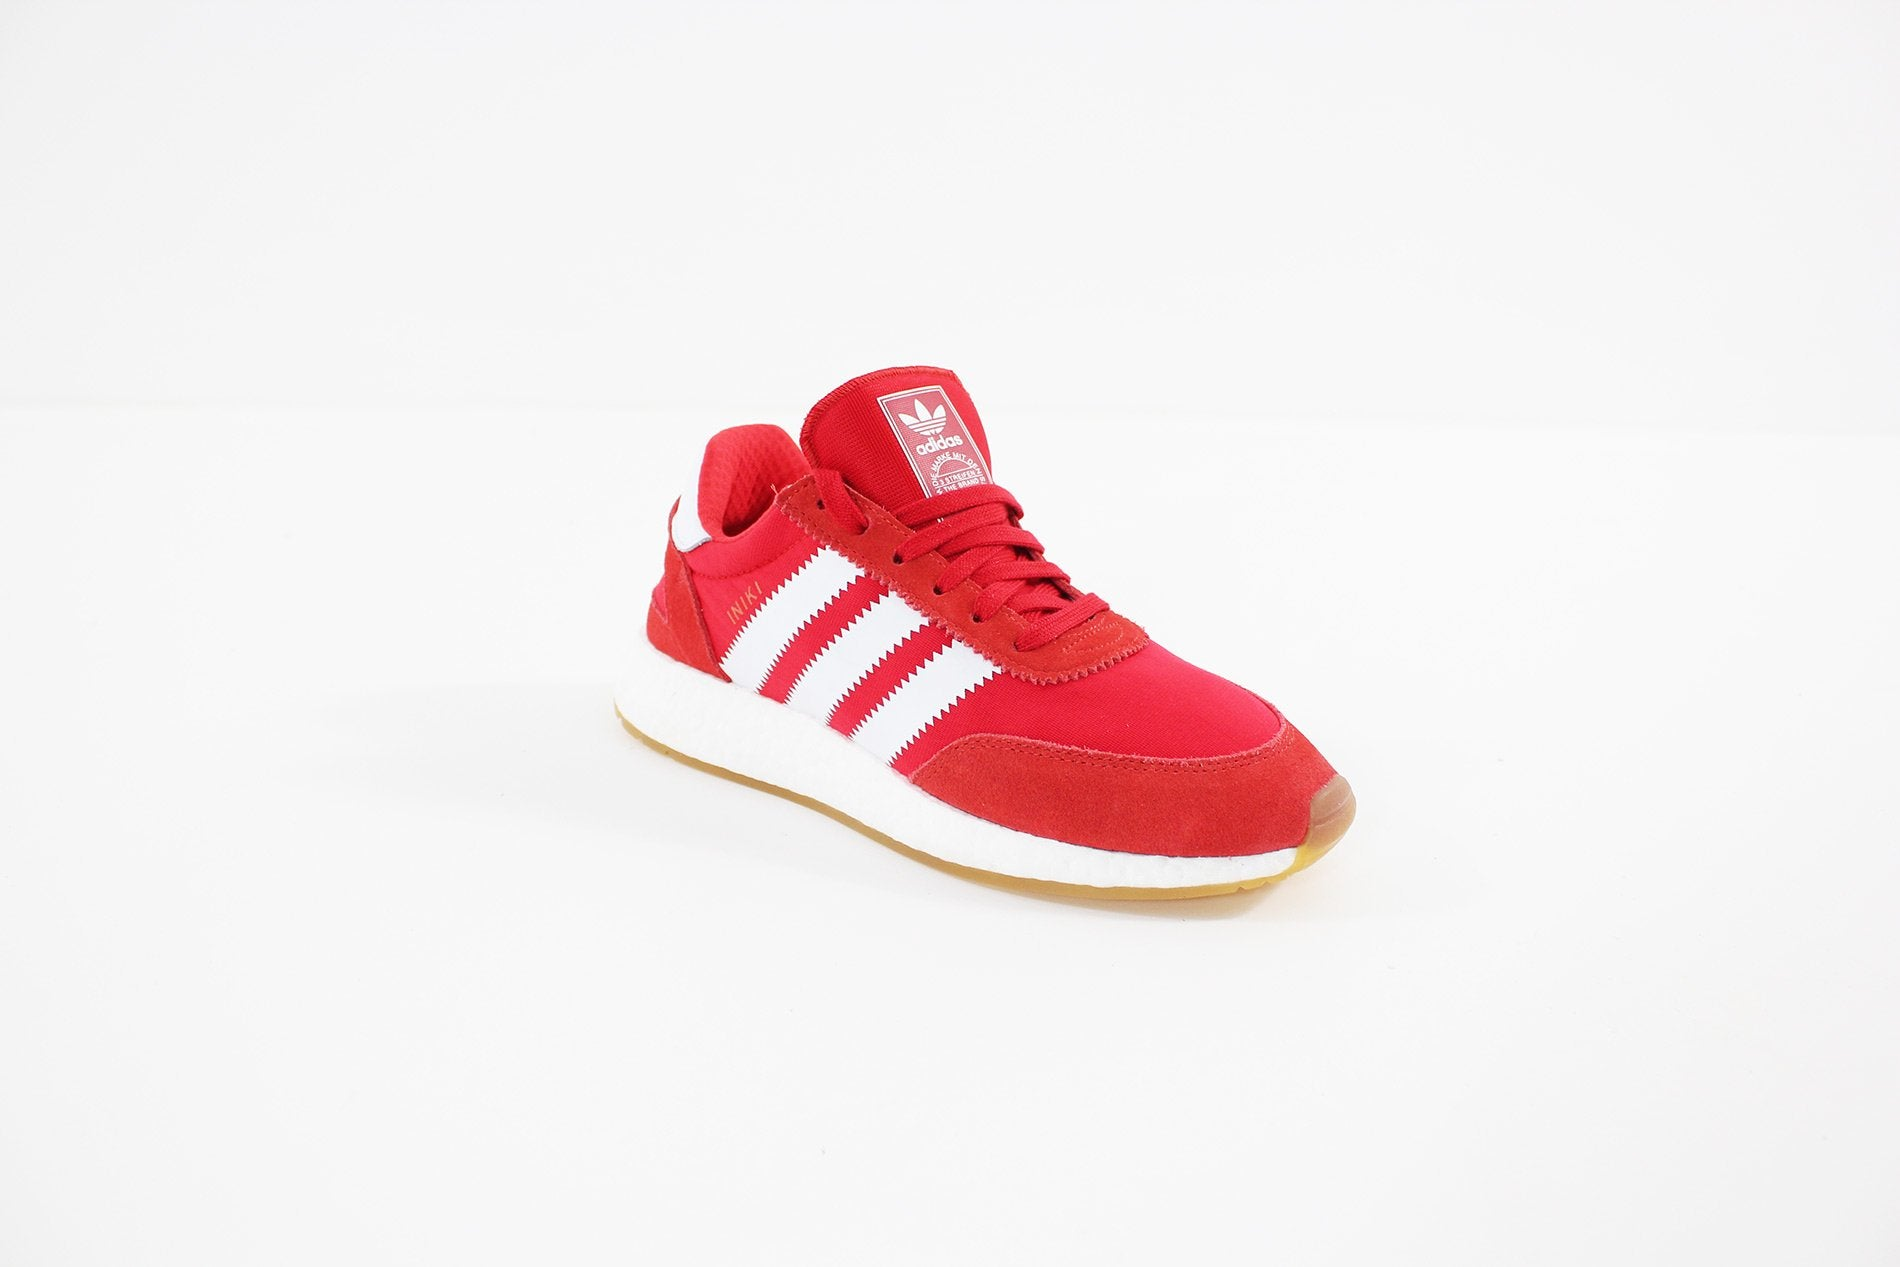 new photos clearance prices pretty cool Adidas - INIKI RUNNER (RED/FTWWHT/GUM3) - Sneakerworld